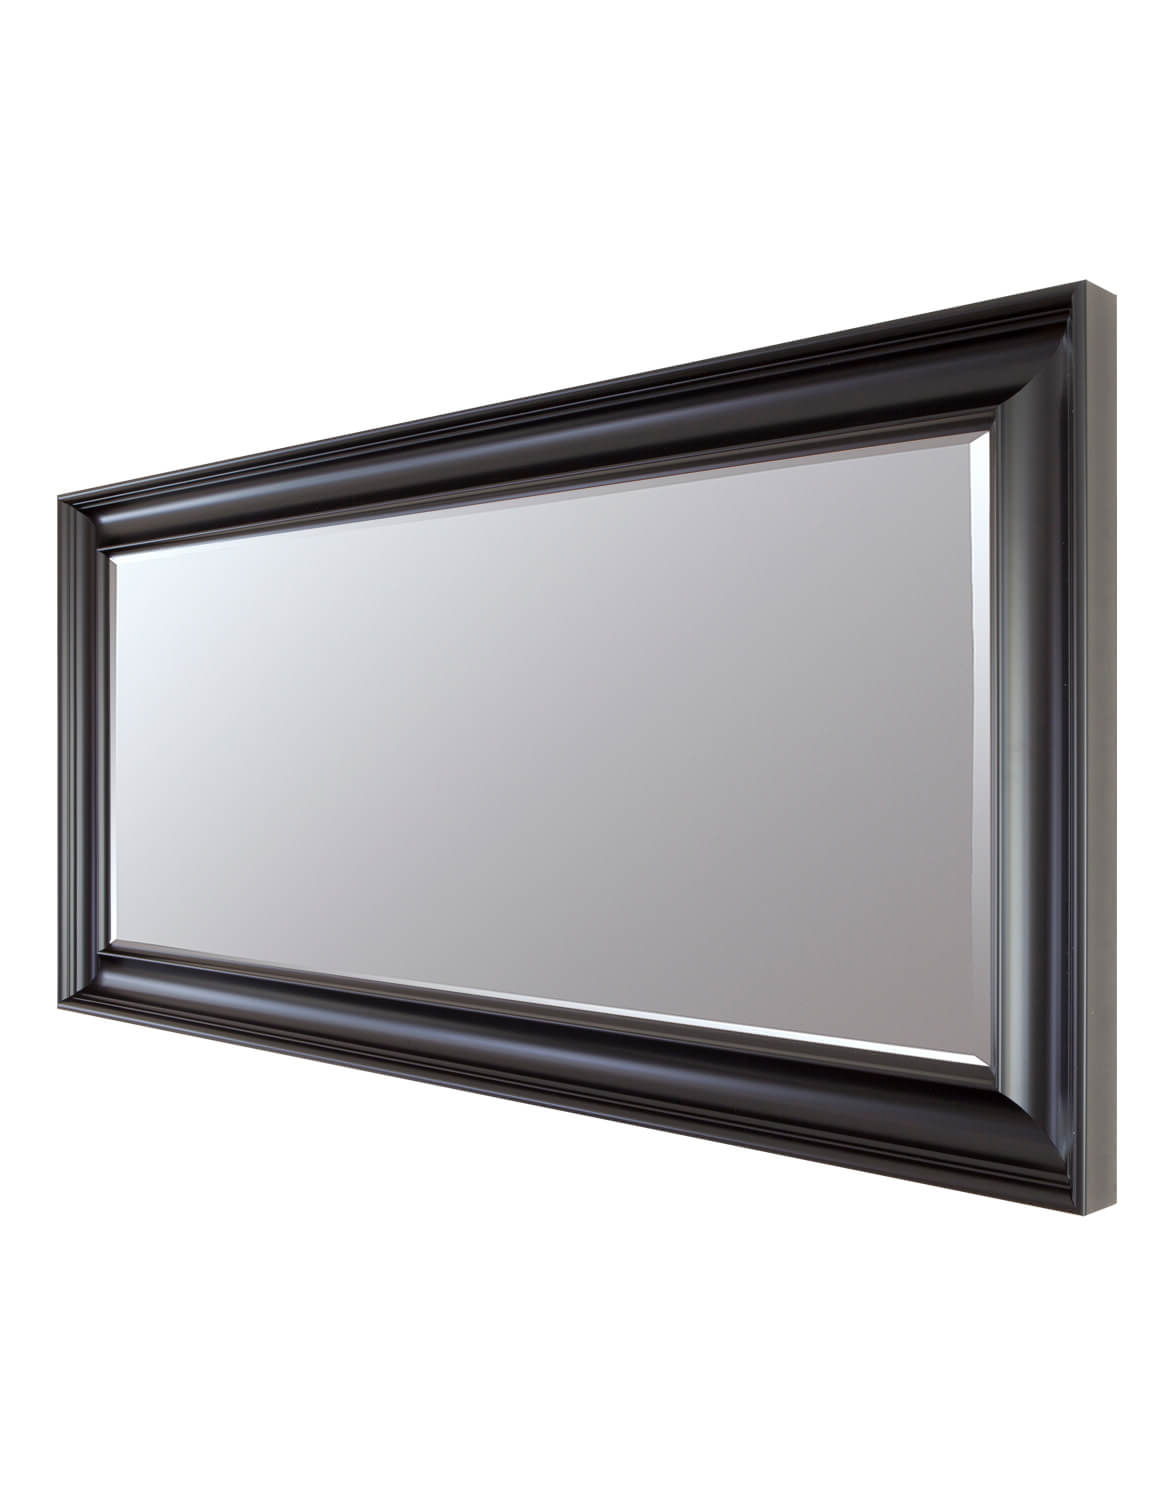 Luxe Black 77x138cm Long Wall Mirror Intended For Most Recent White Long Wall Mirrors (View 20 of 20)